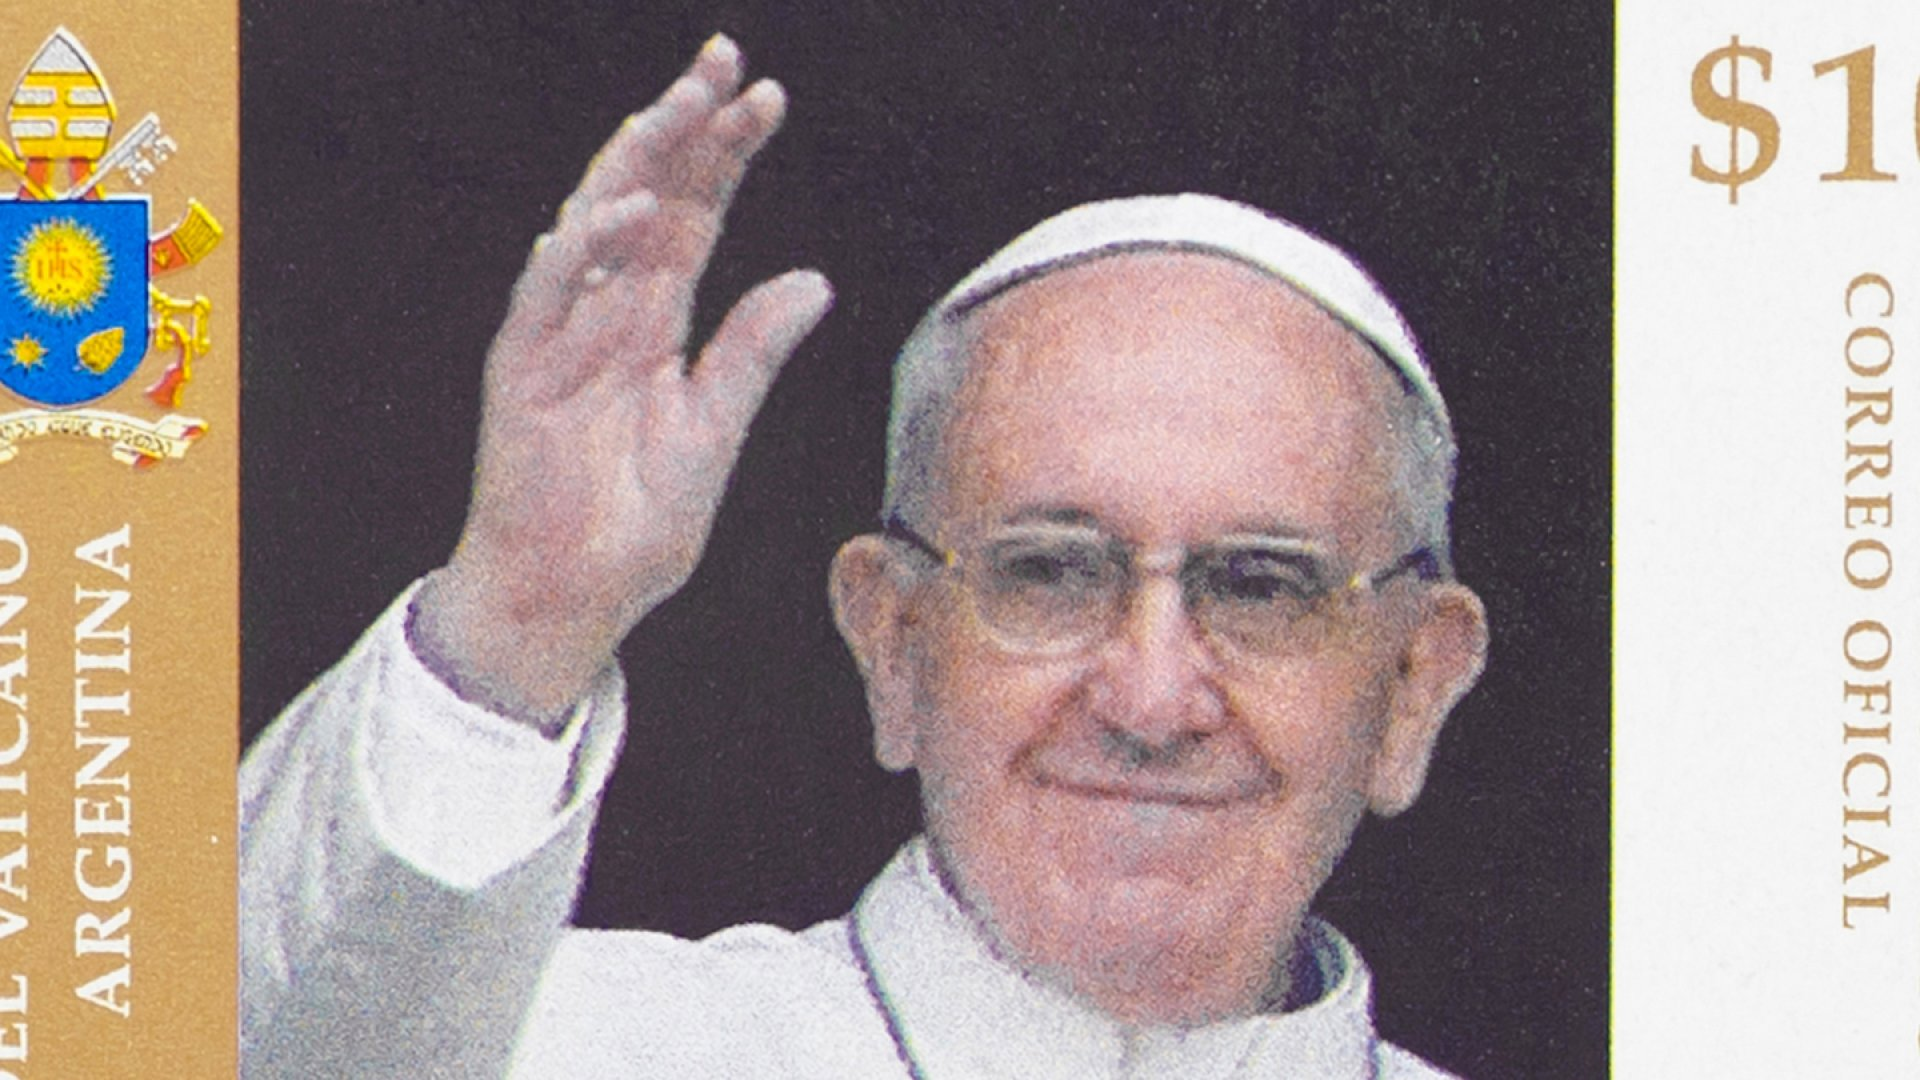 Surprising Leadership Lessons From the Pope